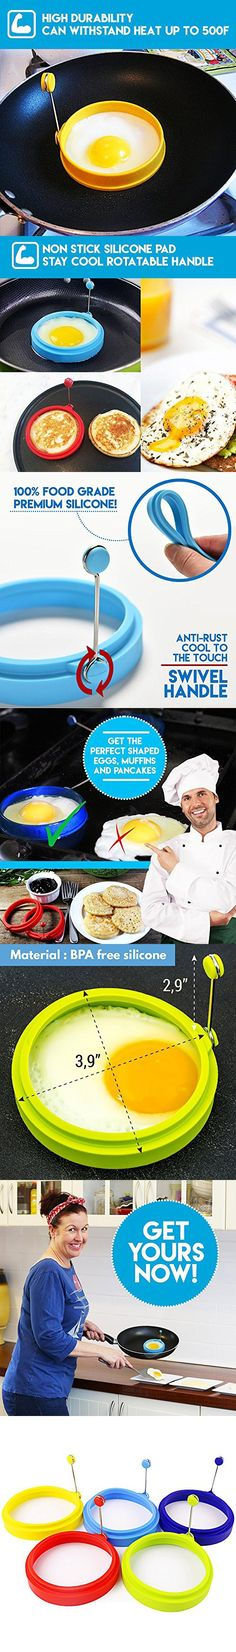 My Egg Ring | Set of 5 | Innovative 3.5 Inch Silicone Egg Ring Pancake Maker Non Stick Round Cooking Mold with Handle | Premium Food Grade Heat Resistant Silicone | Color May Vary | 1360